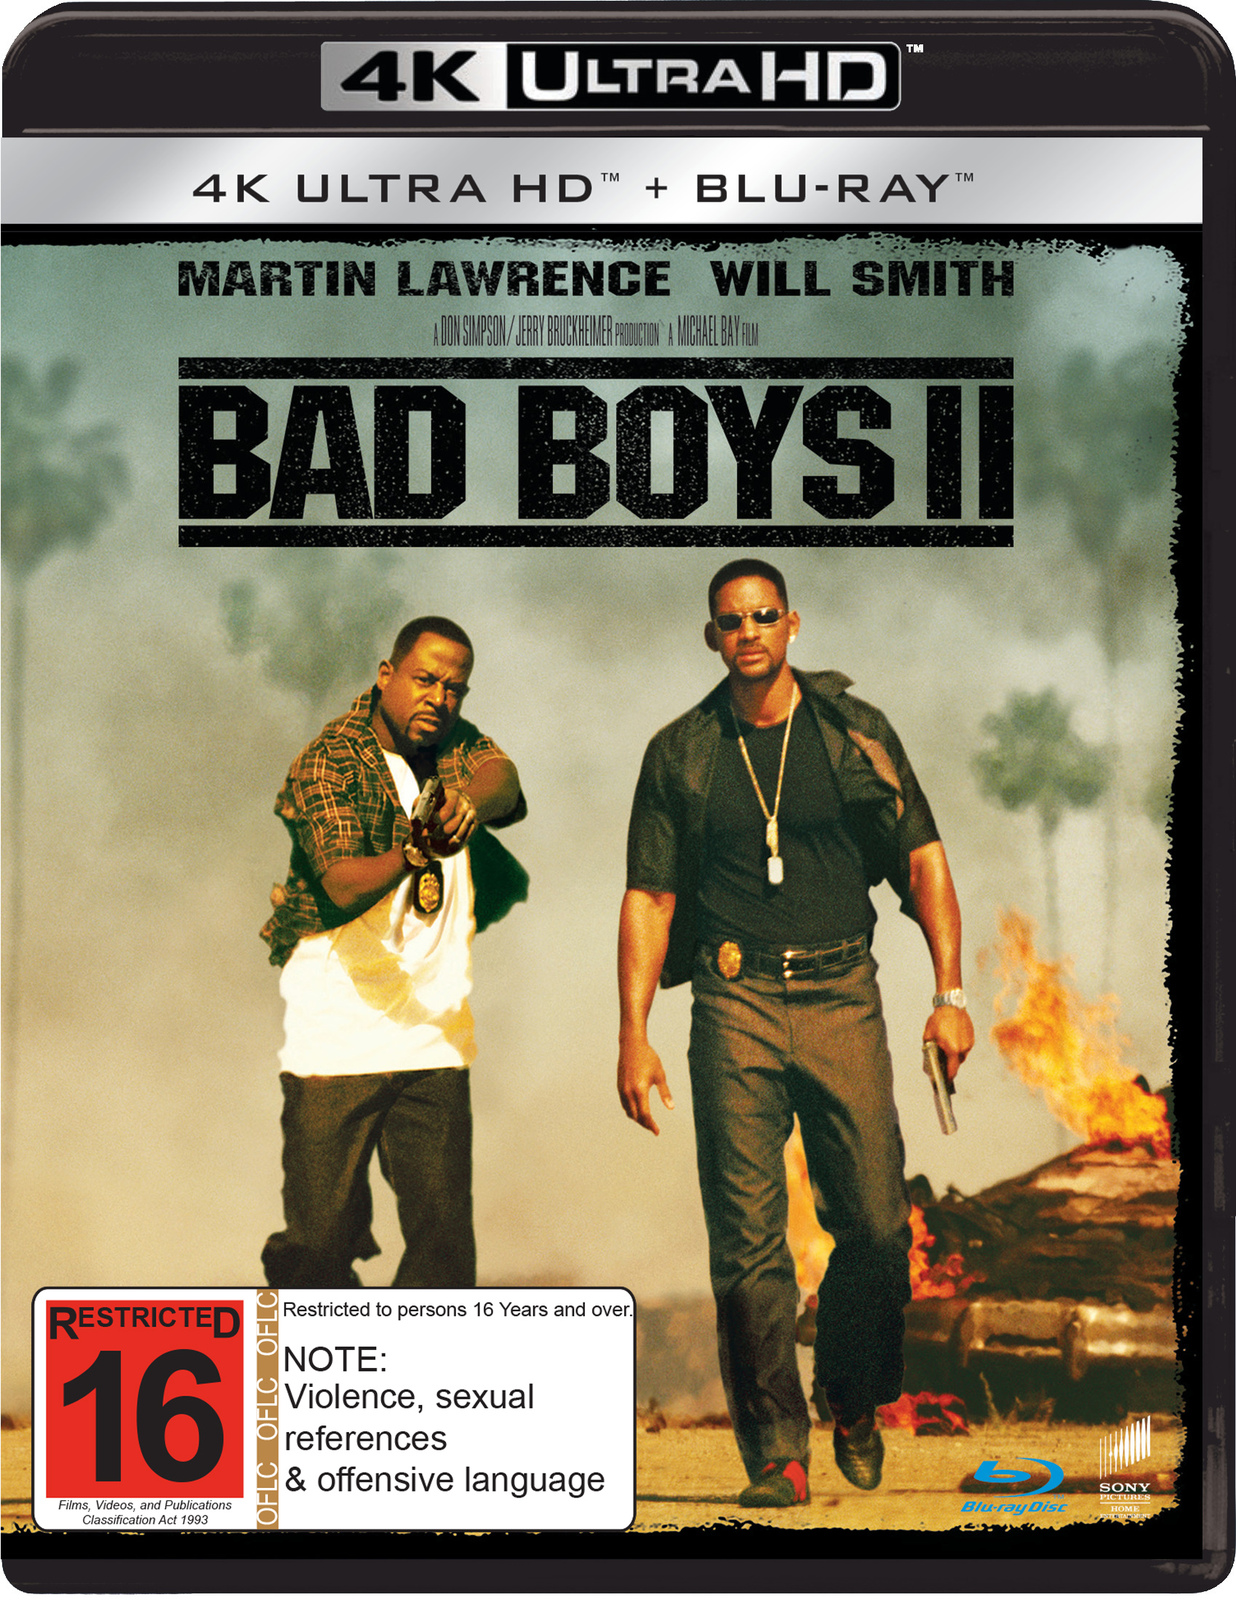 Bad Boys II on UHD Blu-ray image